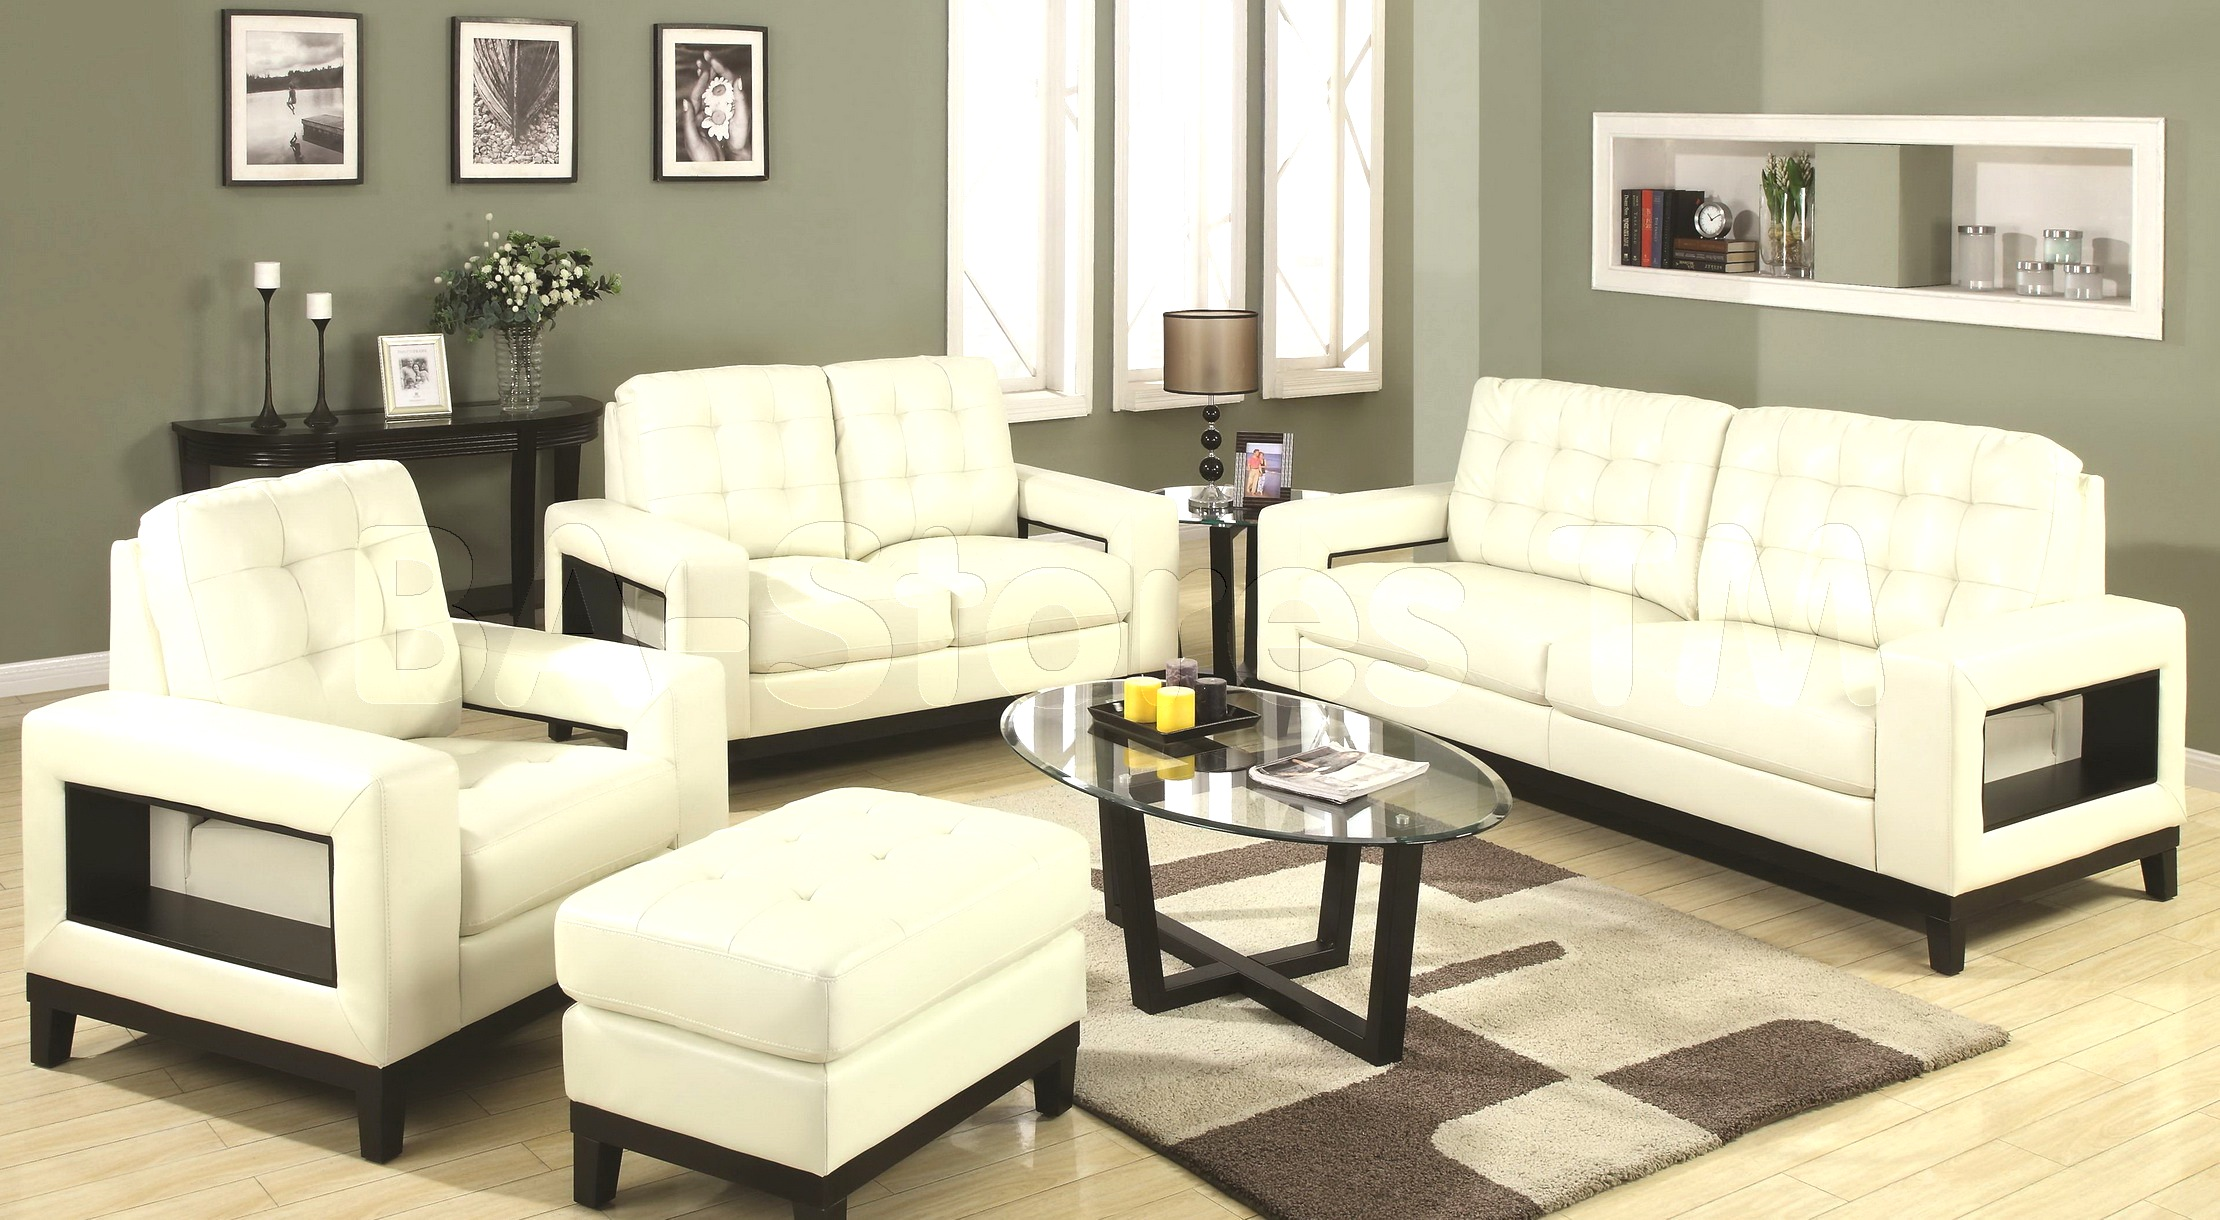 Sofa set designs home design for Contemporary living room furniture